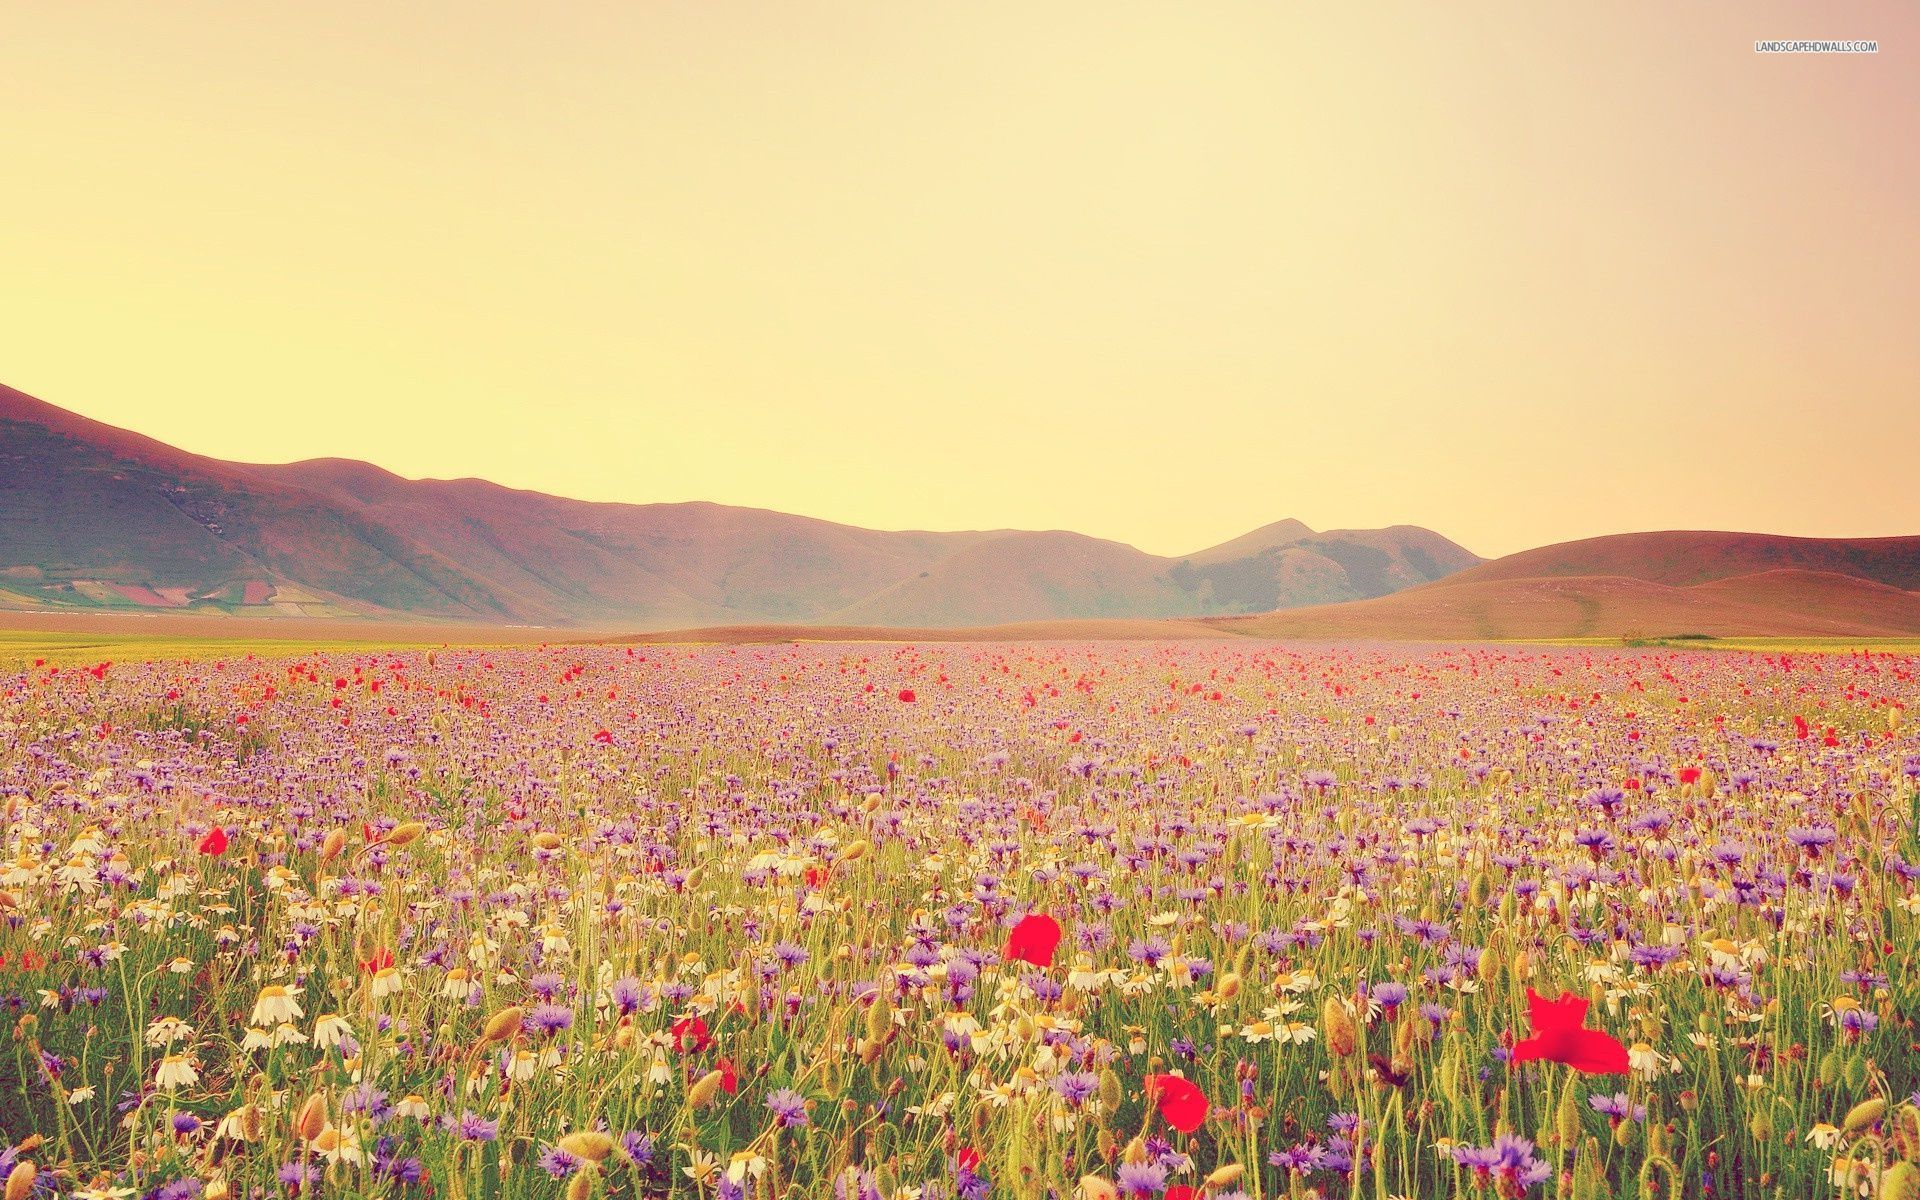 Wildflower Field Wallpapers Full Hd With Hd Desktop 1920x1200 Px 539 93 Kb Twitter Cover Photo Facebook Cover Cover Pics